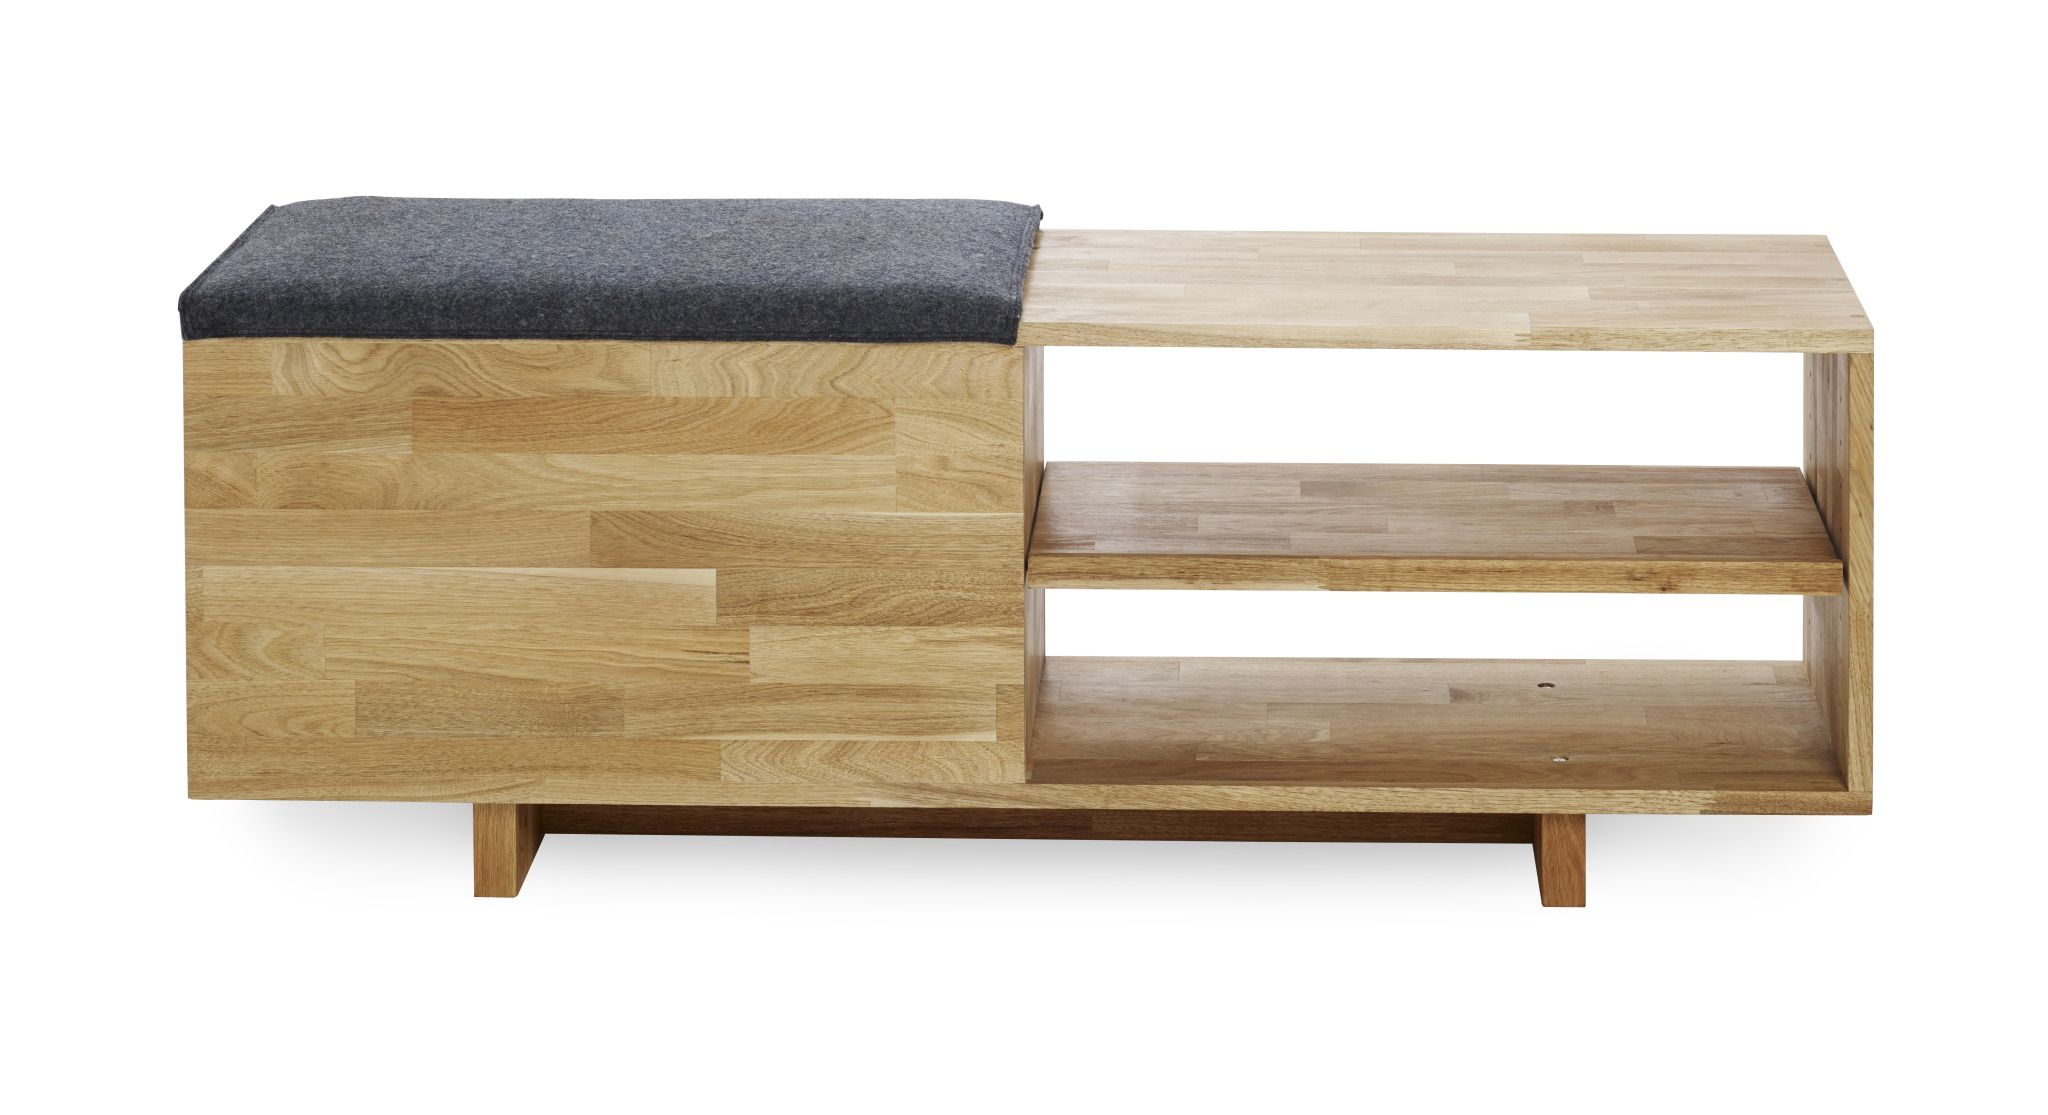 Storage Bench With Cushion | Pacific Home Furniture Store On Oahu U0026 Maui,  Hawaii